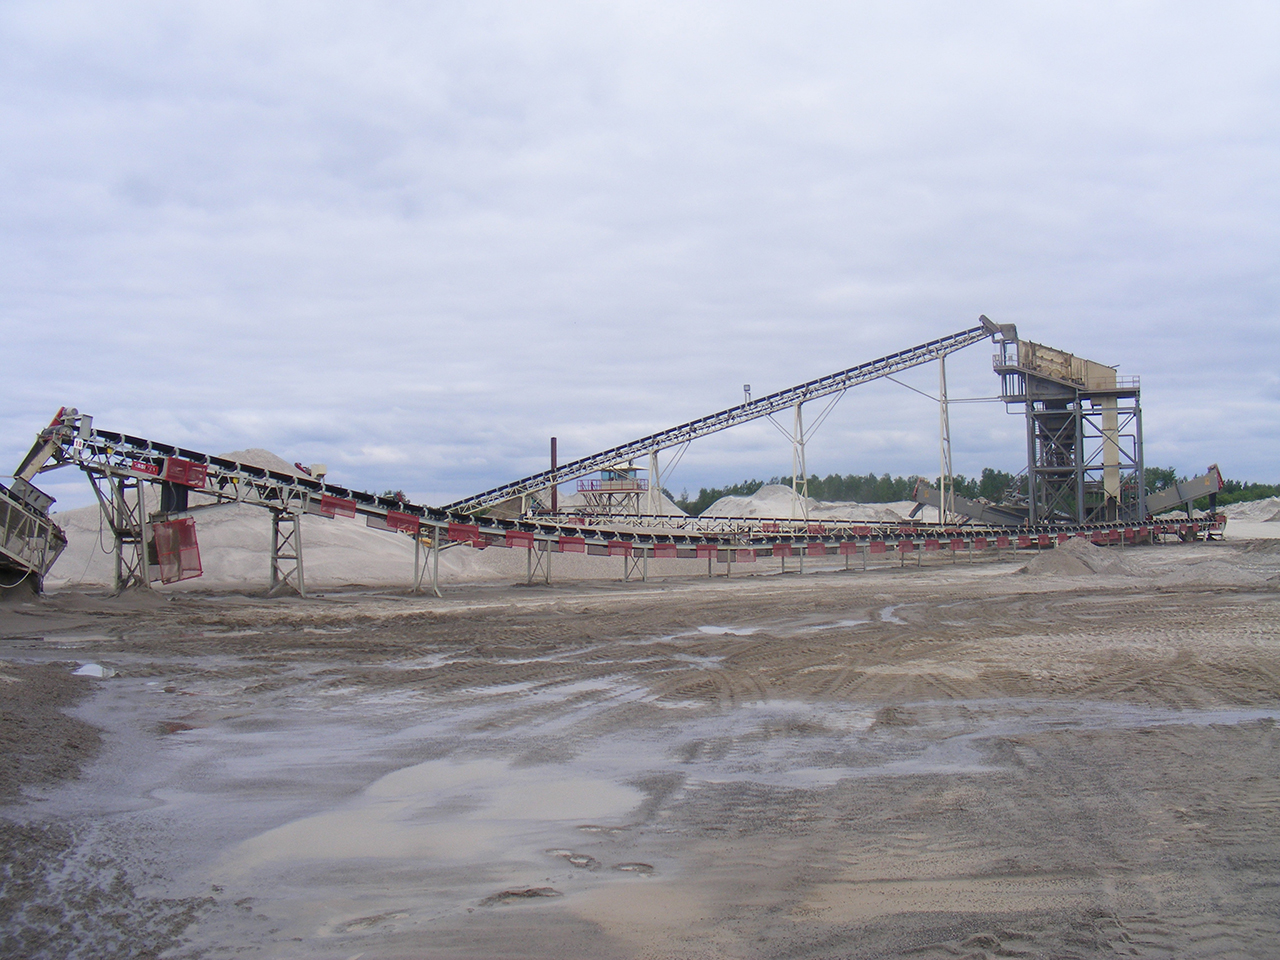 LandTransferConveyors_Media_2